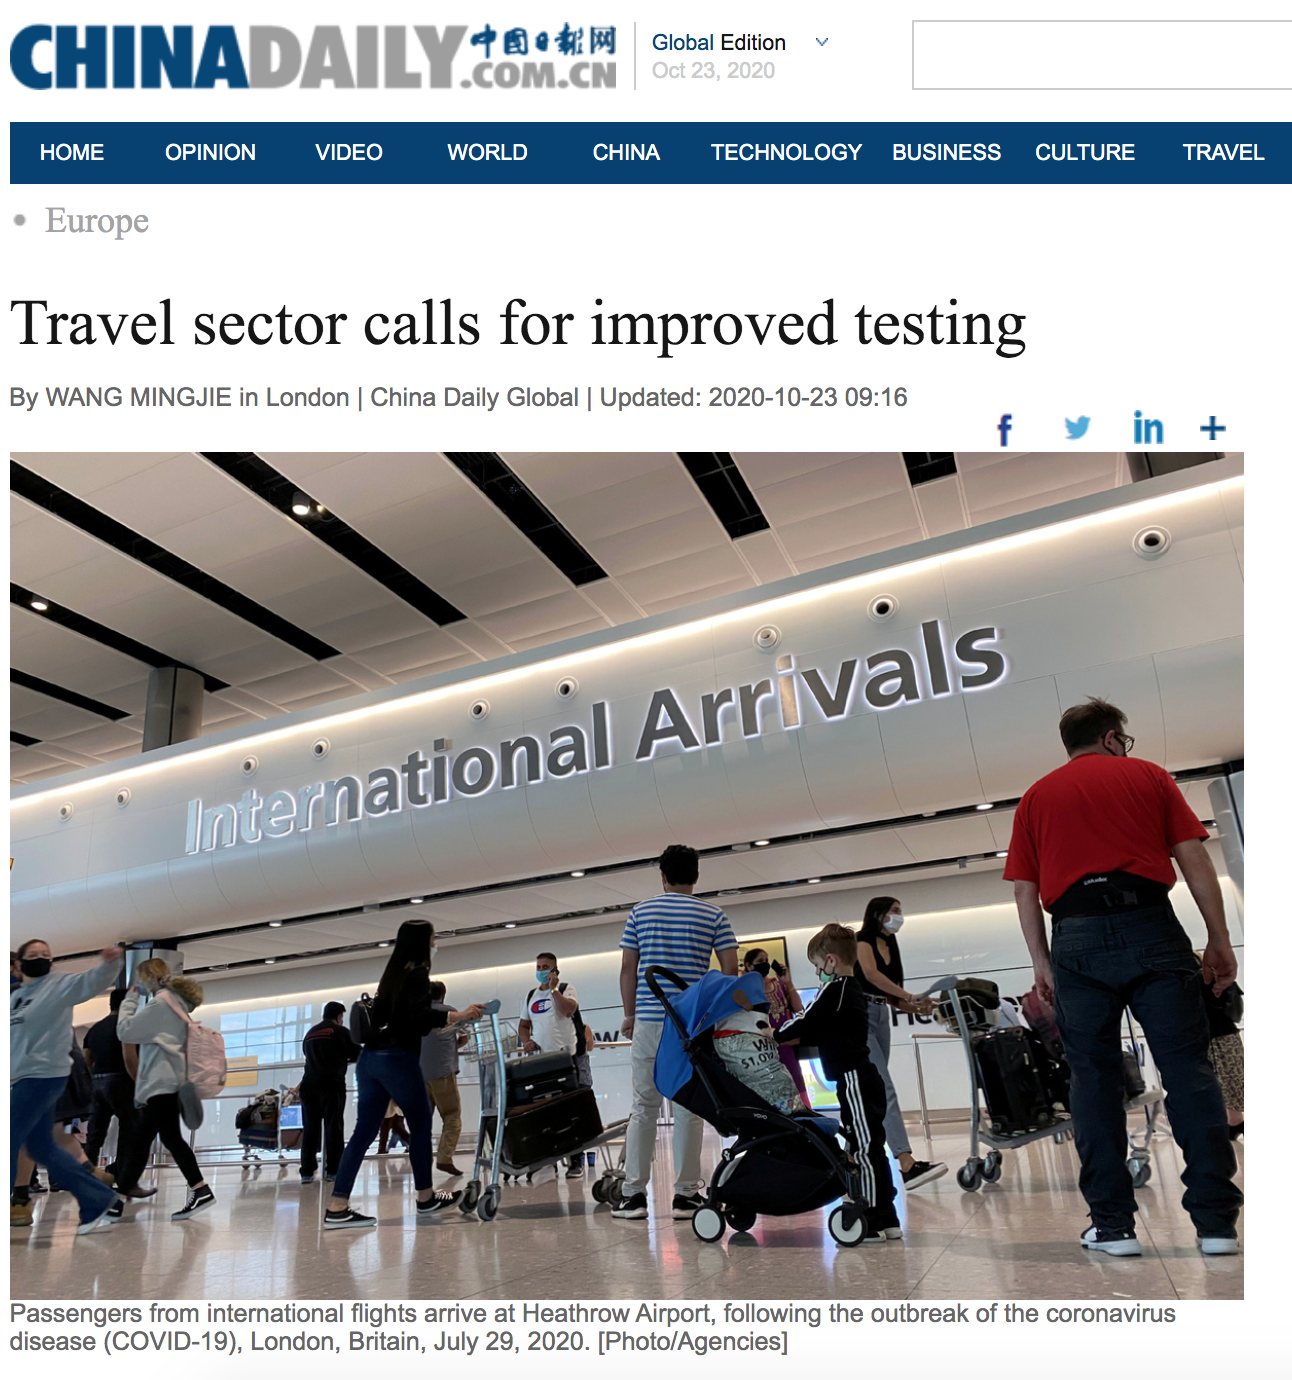 Professor Dimitrios Buhalis interview on Travel sector calls for improved testing at airports #COVID